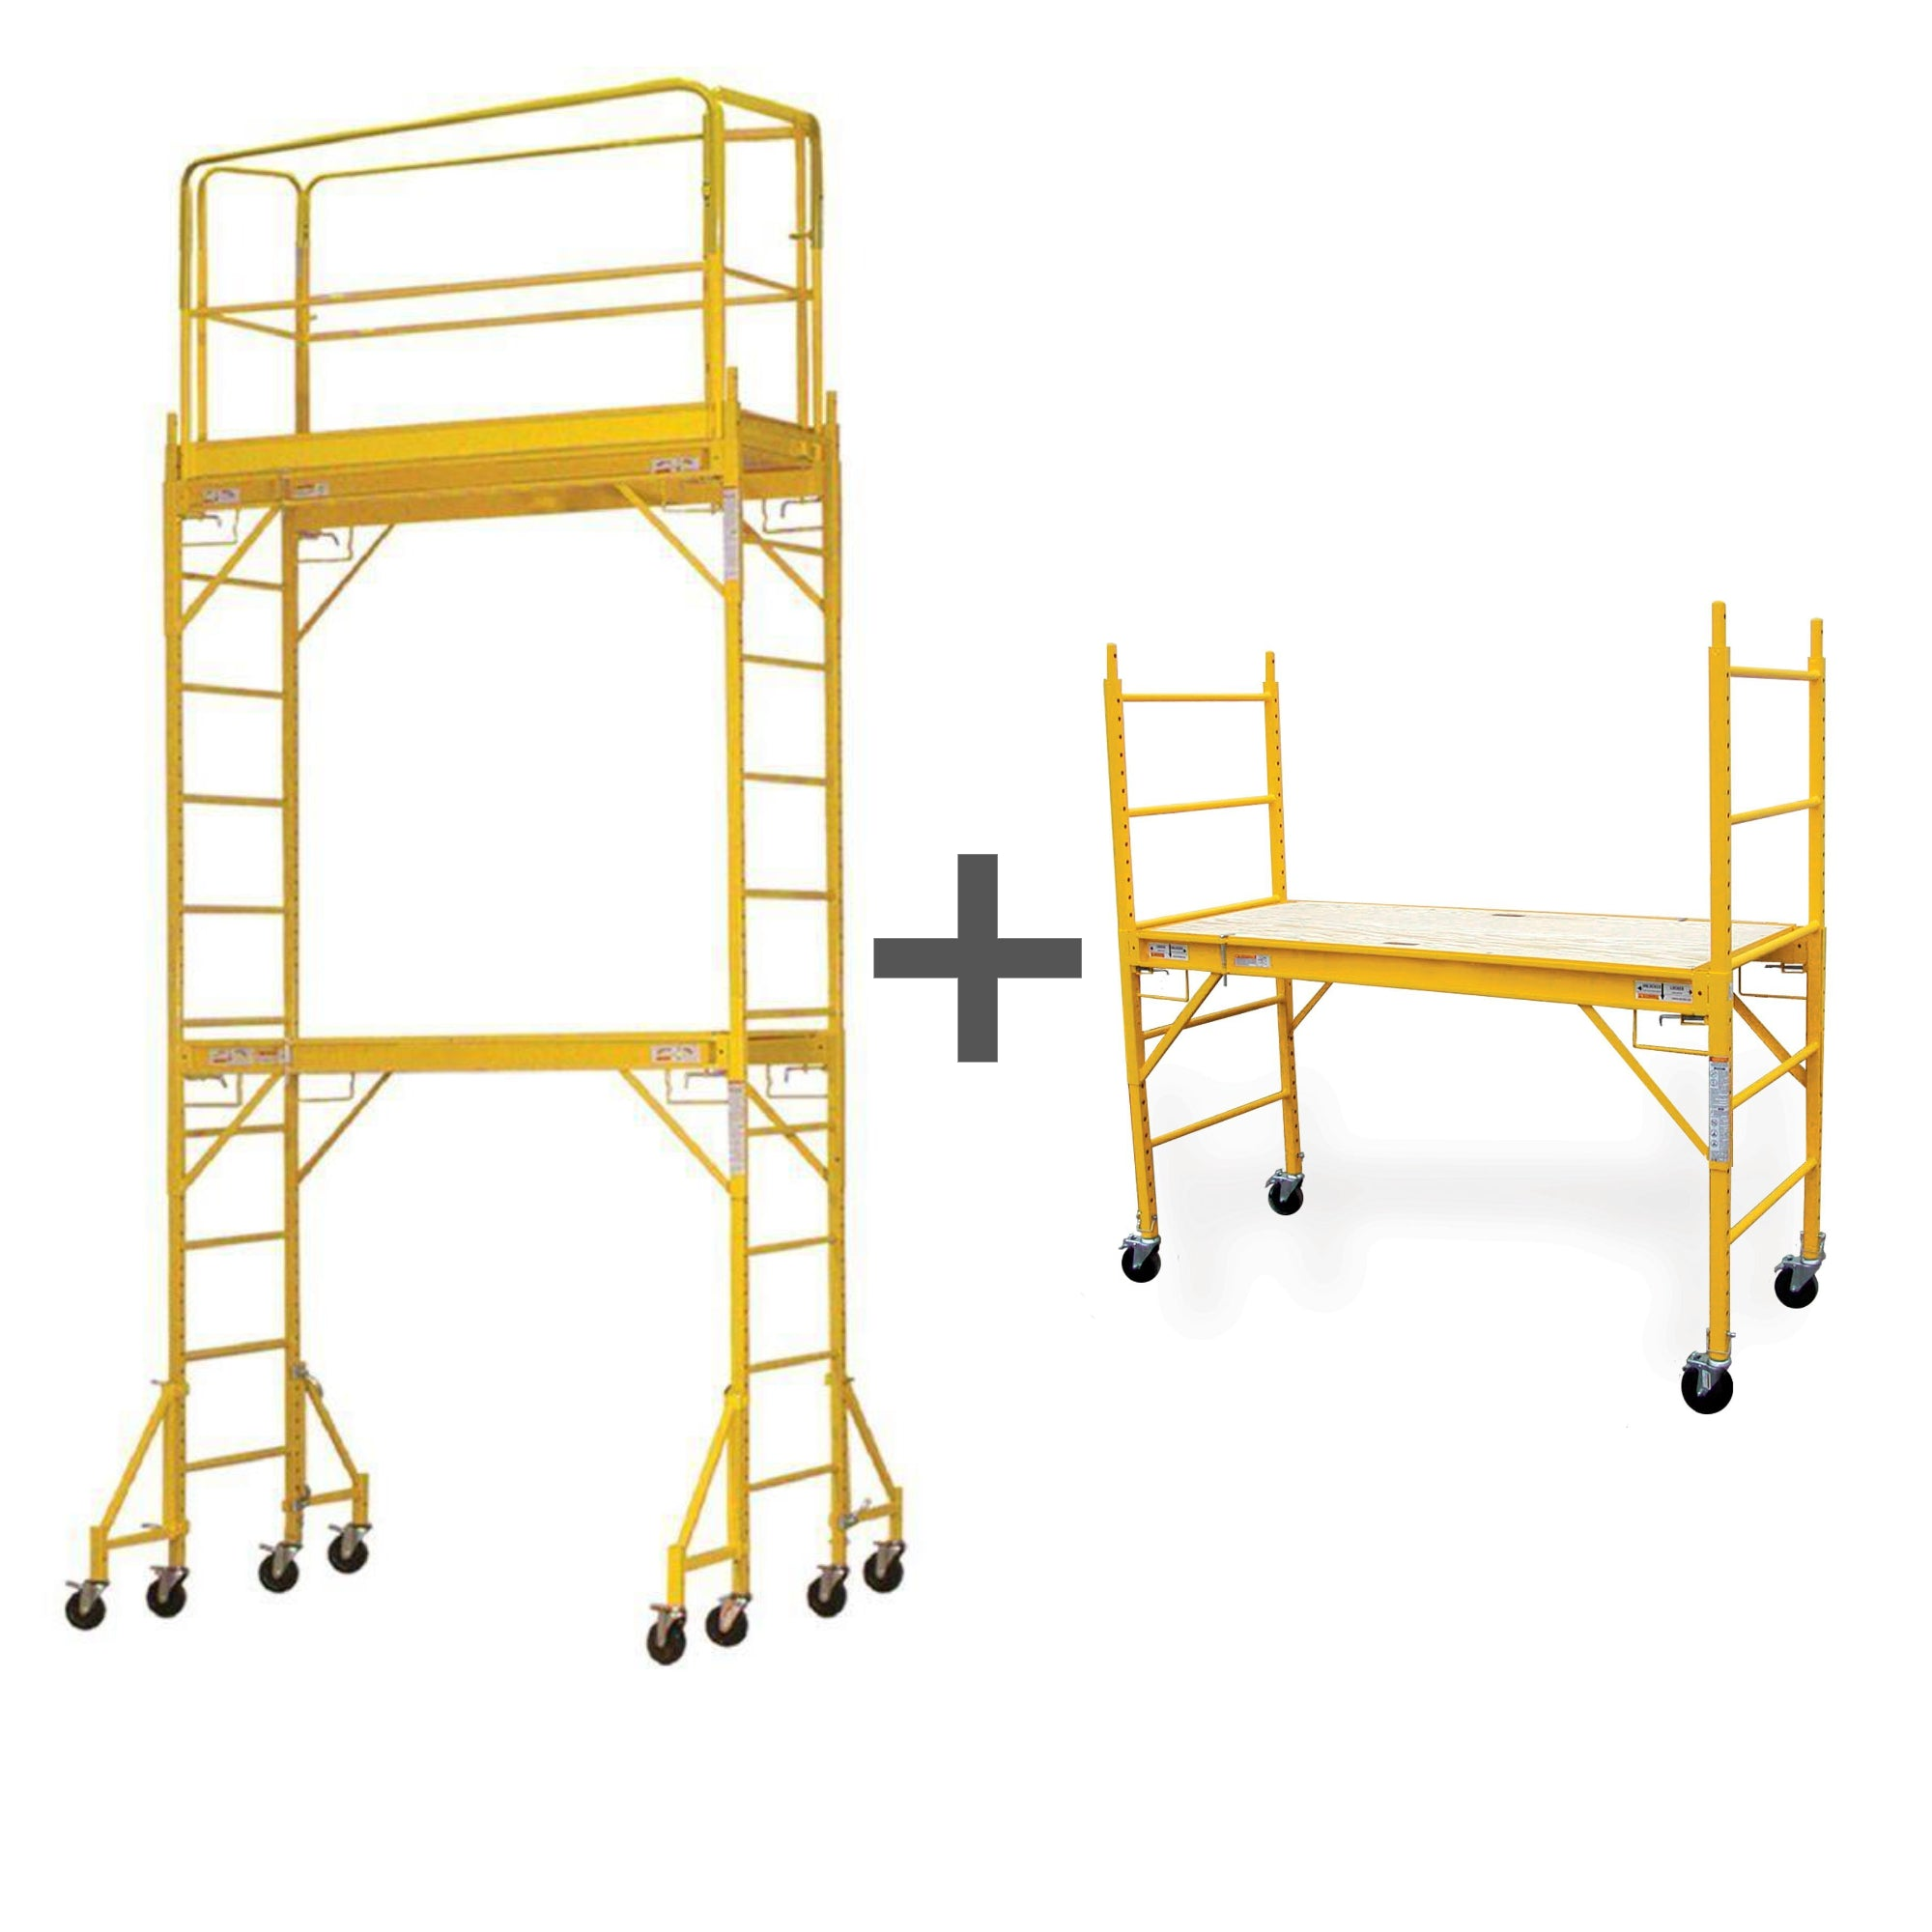 12 Foot Safety Rails with Outriggers + 6 Foot Scaffold